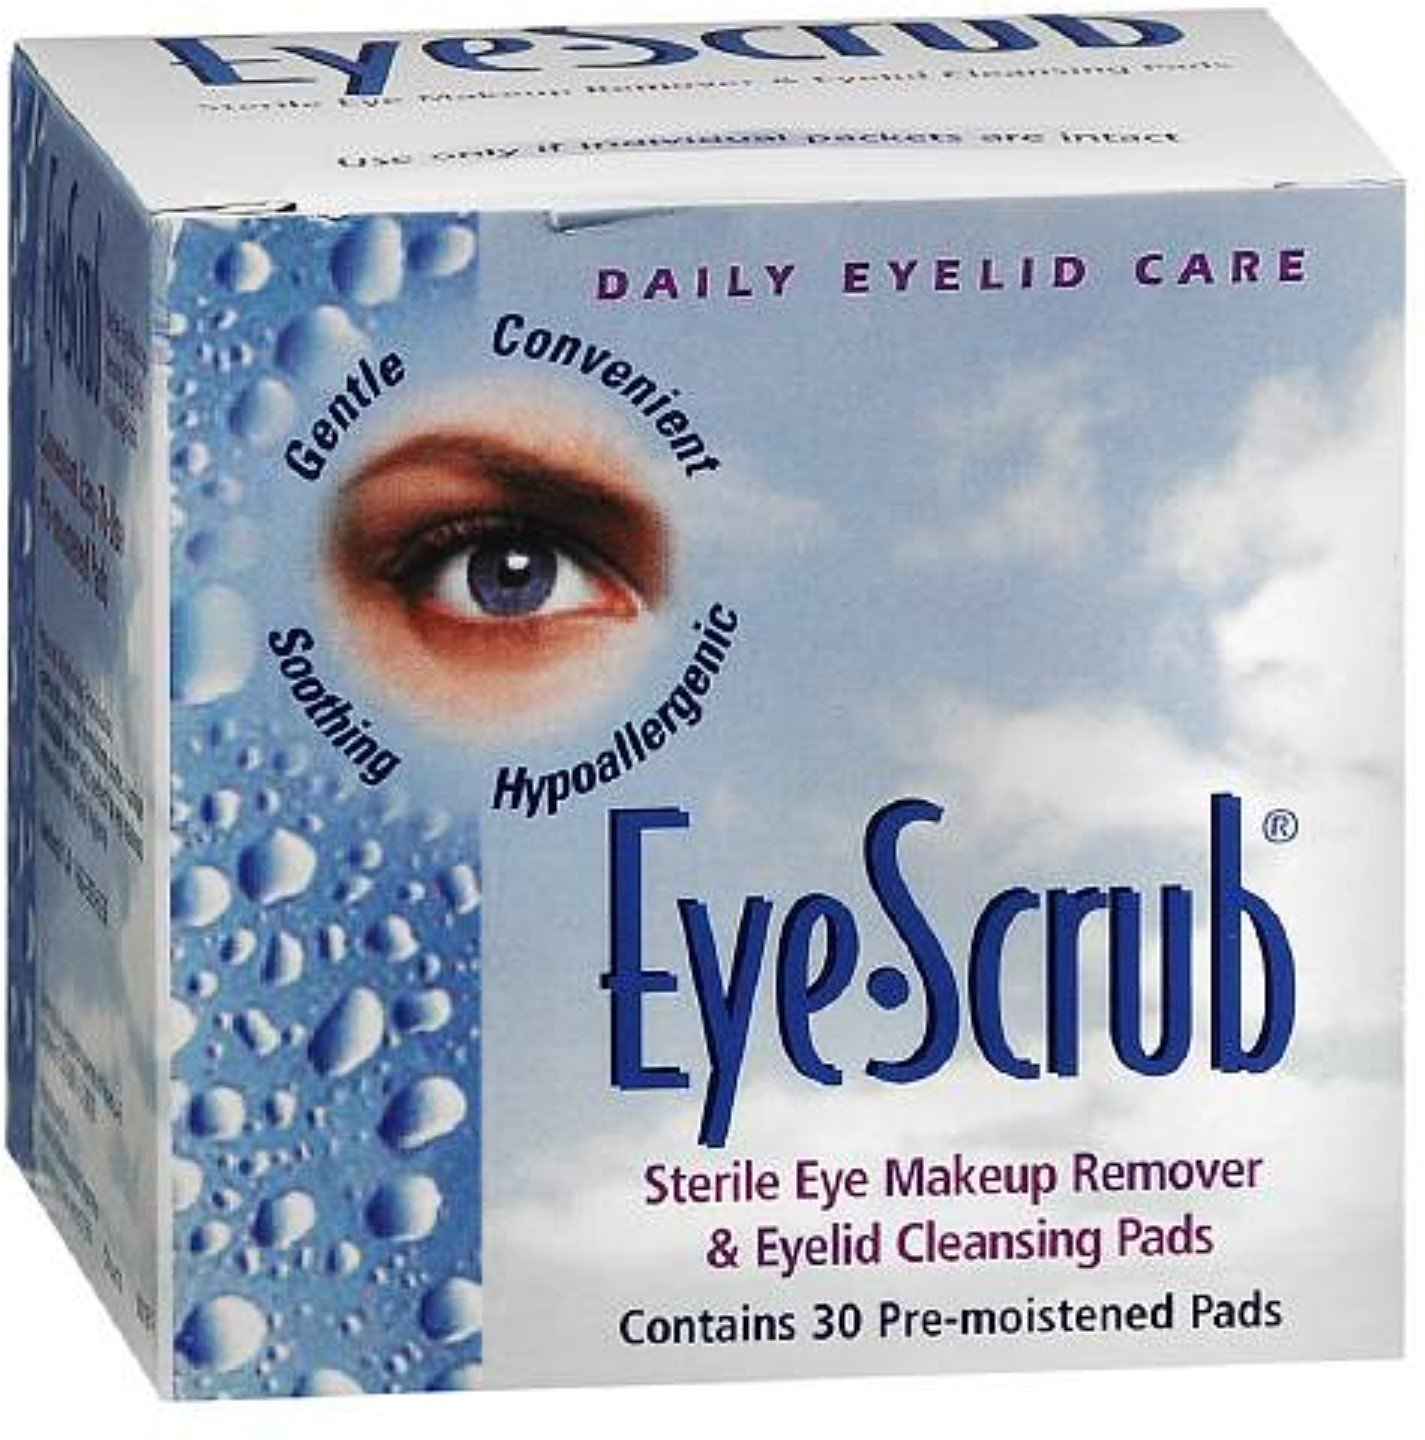 Eye Scrub Sterile Eye Makeup Remover & Eyelid Cleansing Pads 30 ea (Pack of 12)